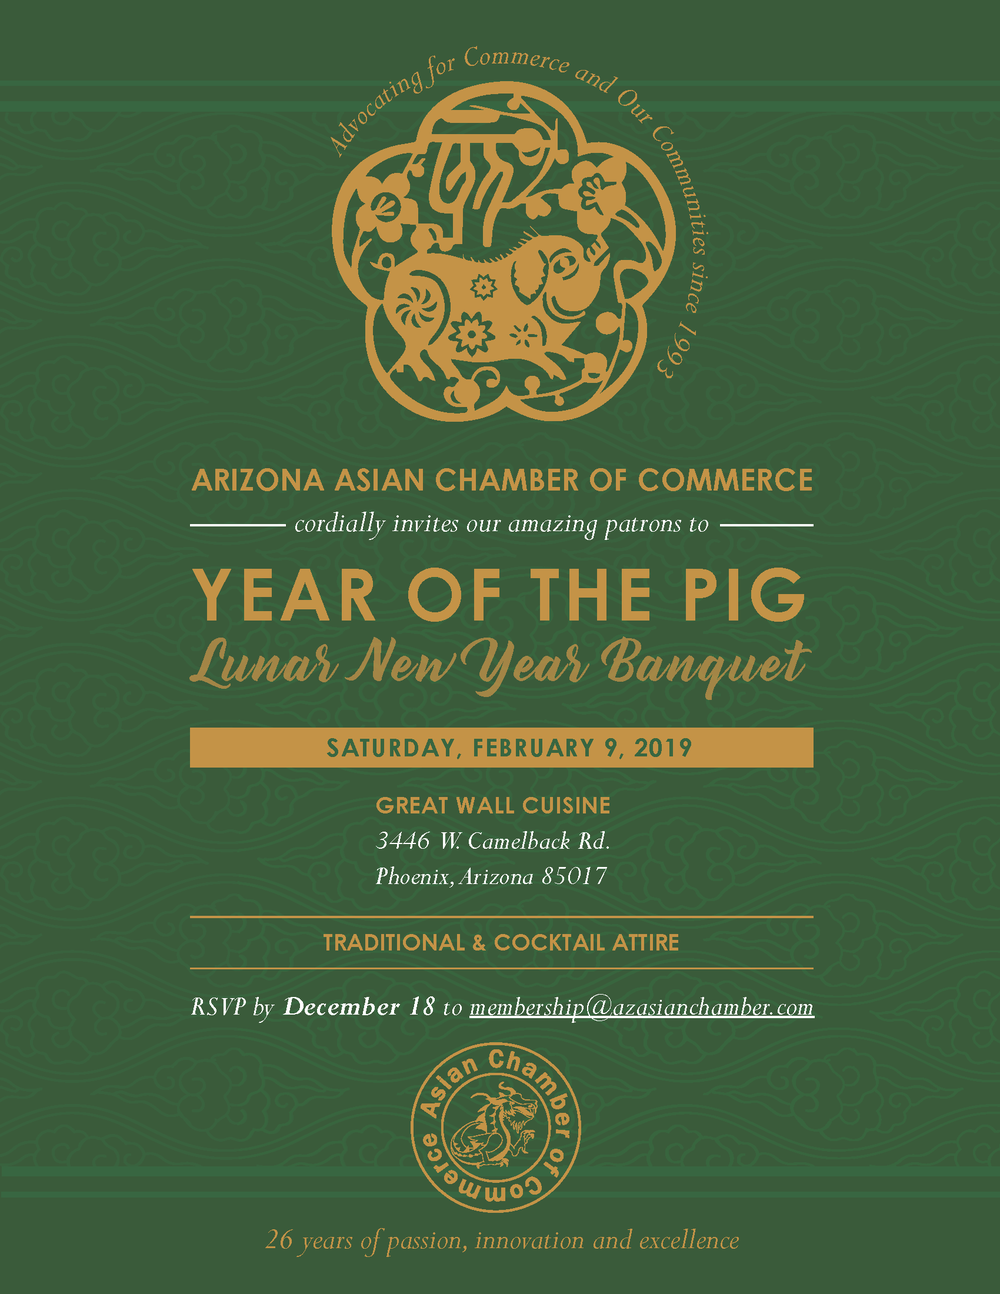 ACC_Banquet Dinner Invite_12.2.18.png